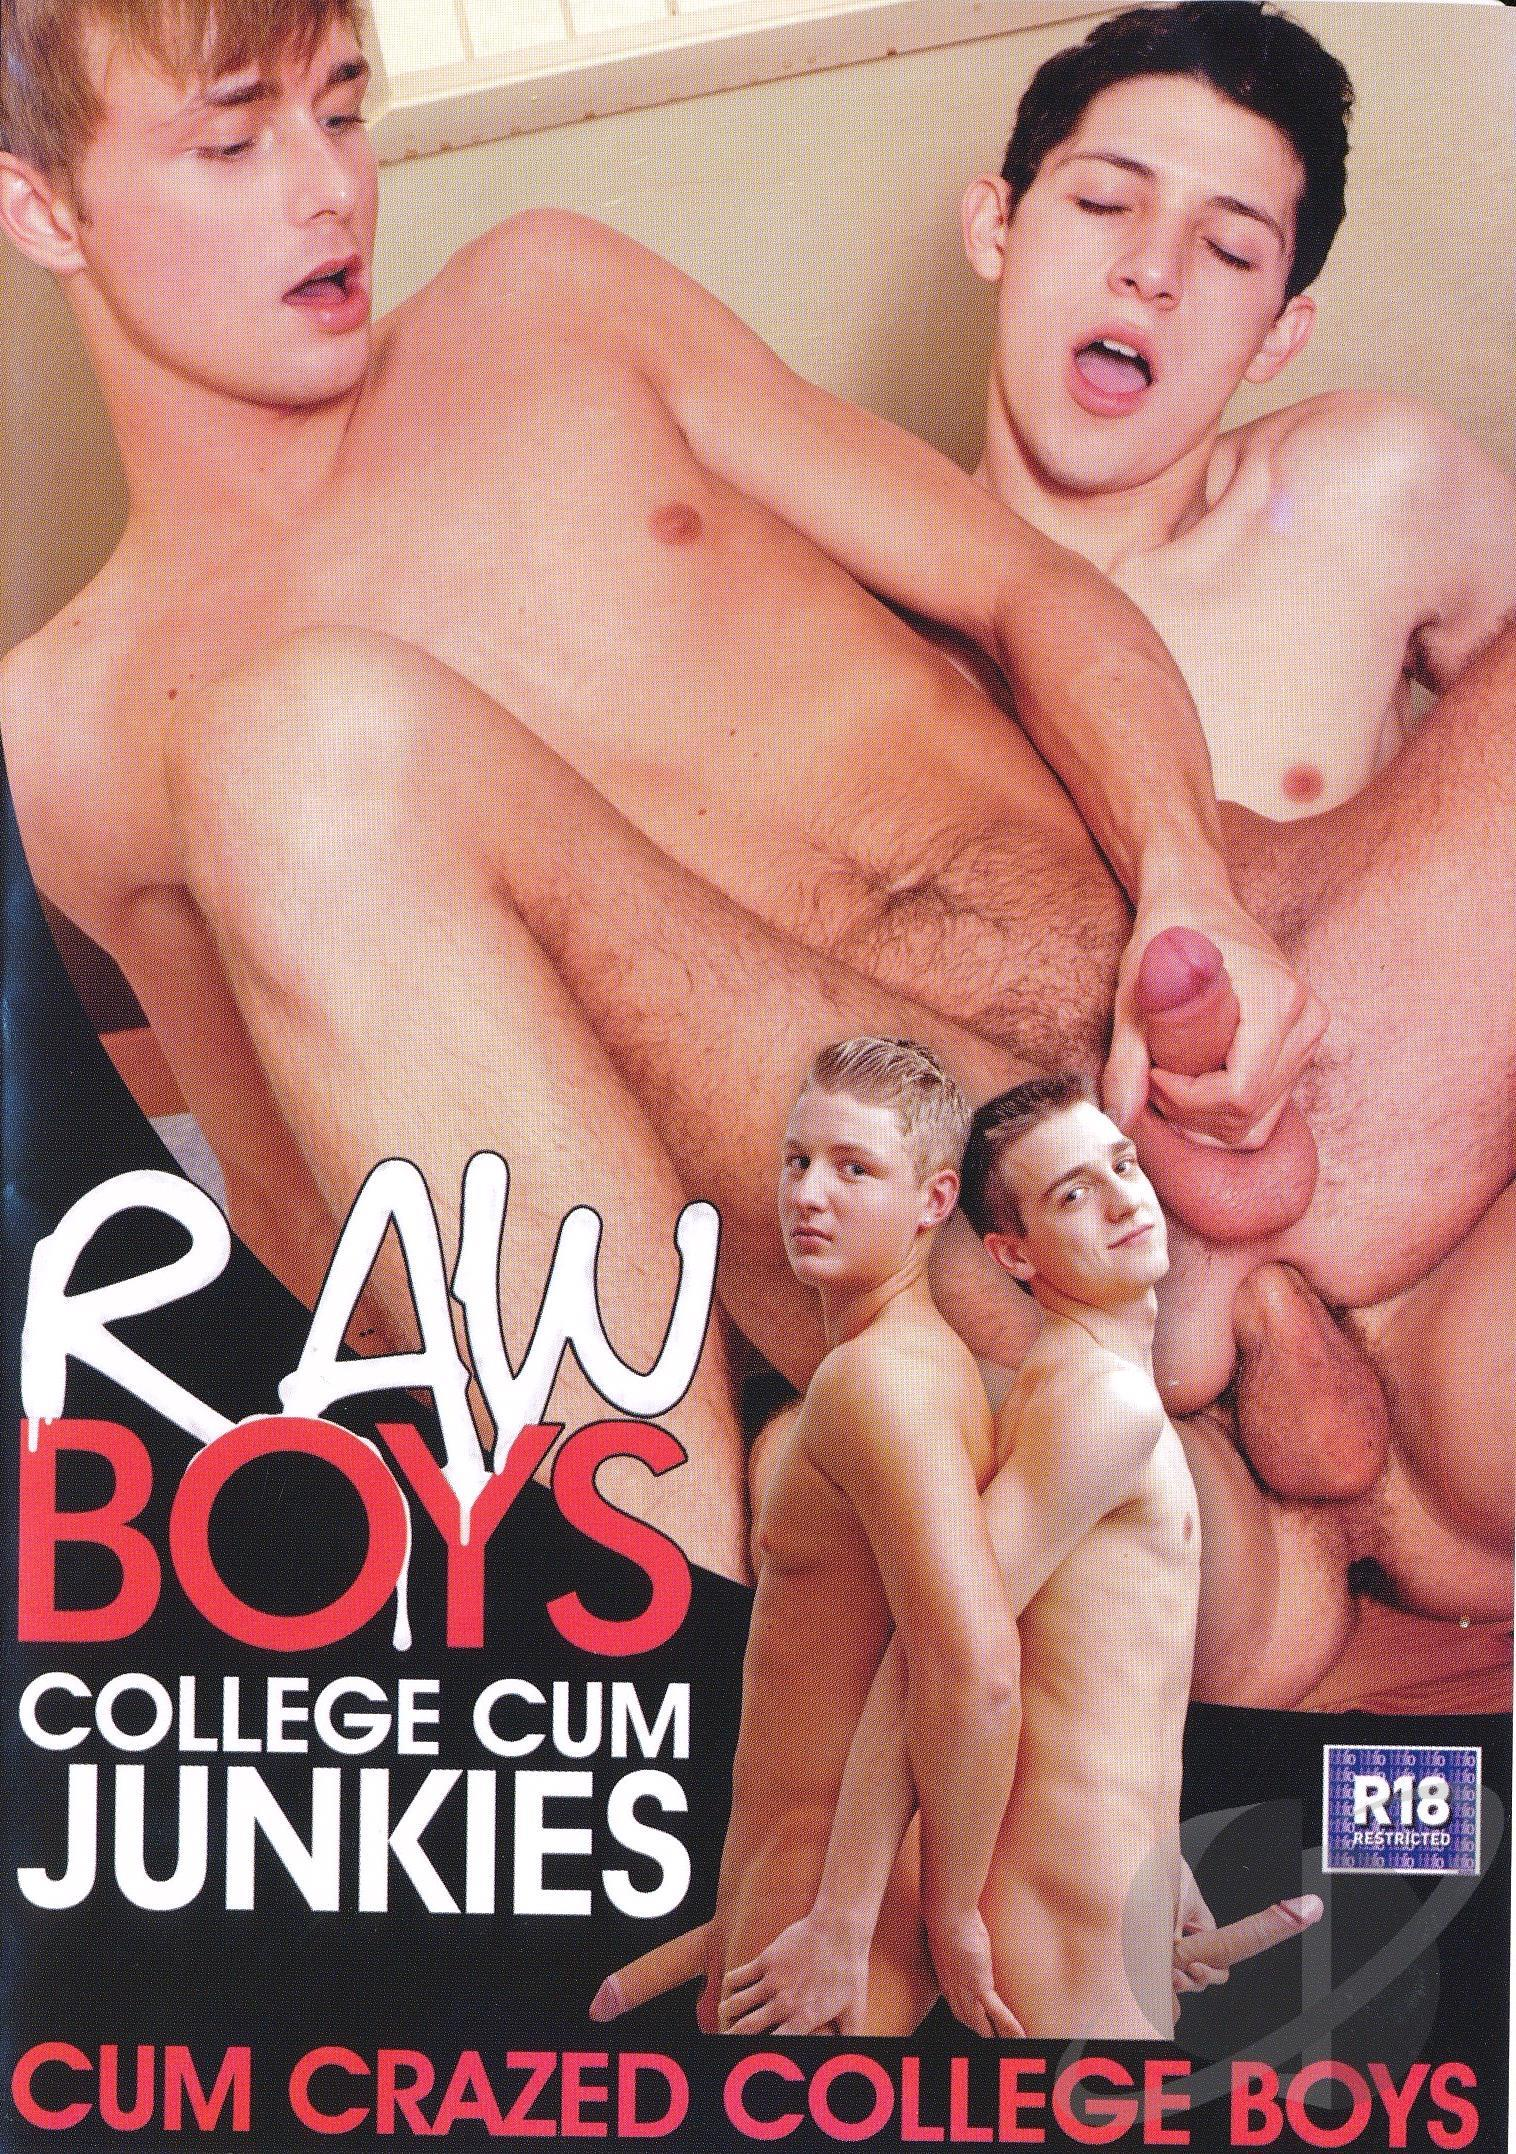 College Cum Junkies